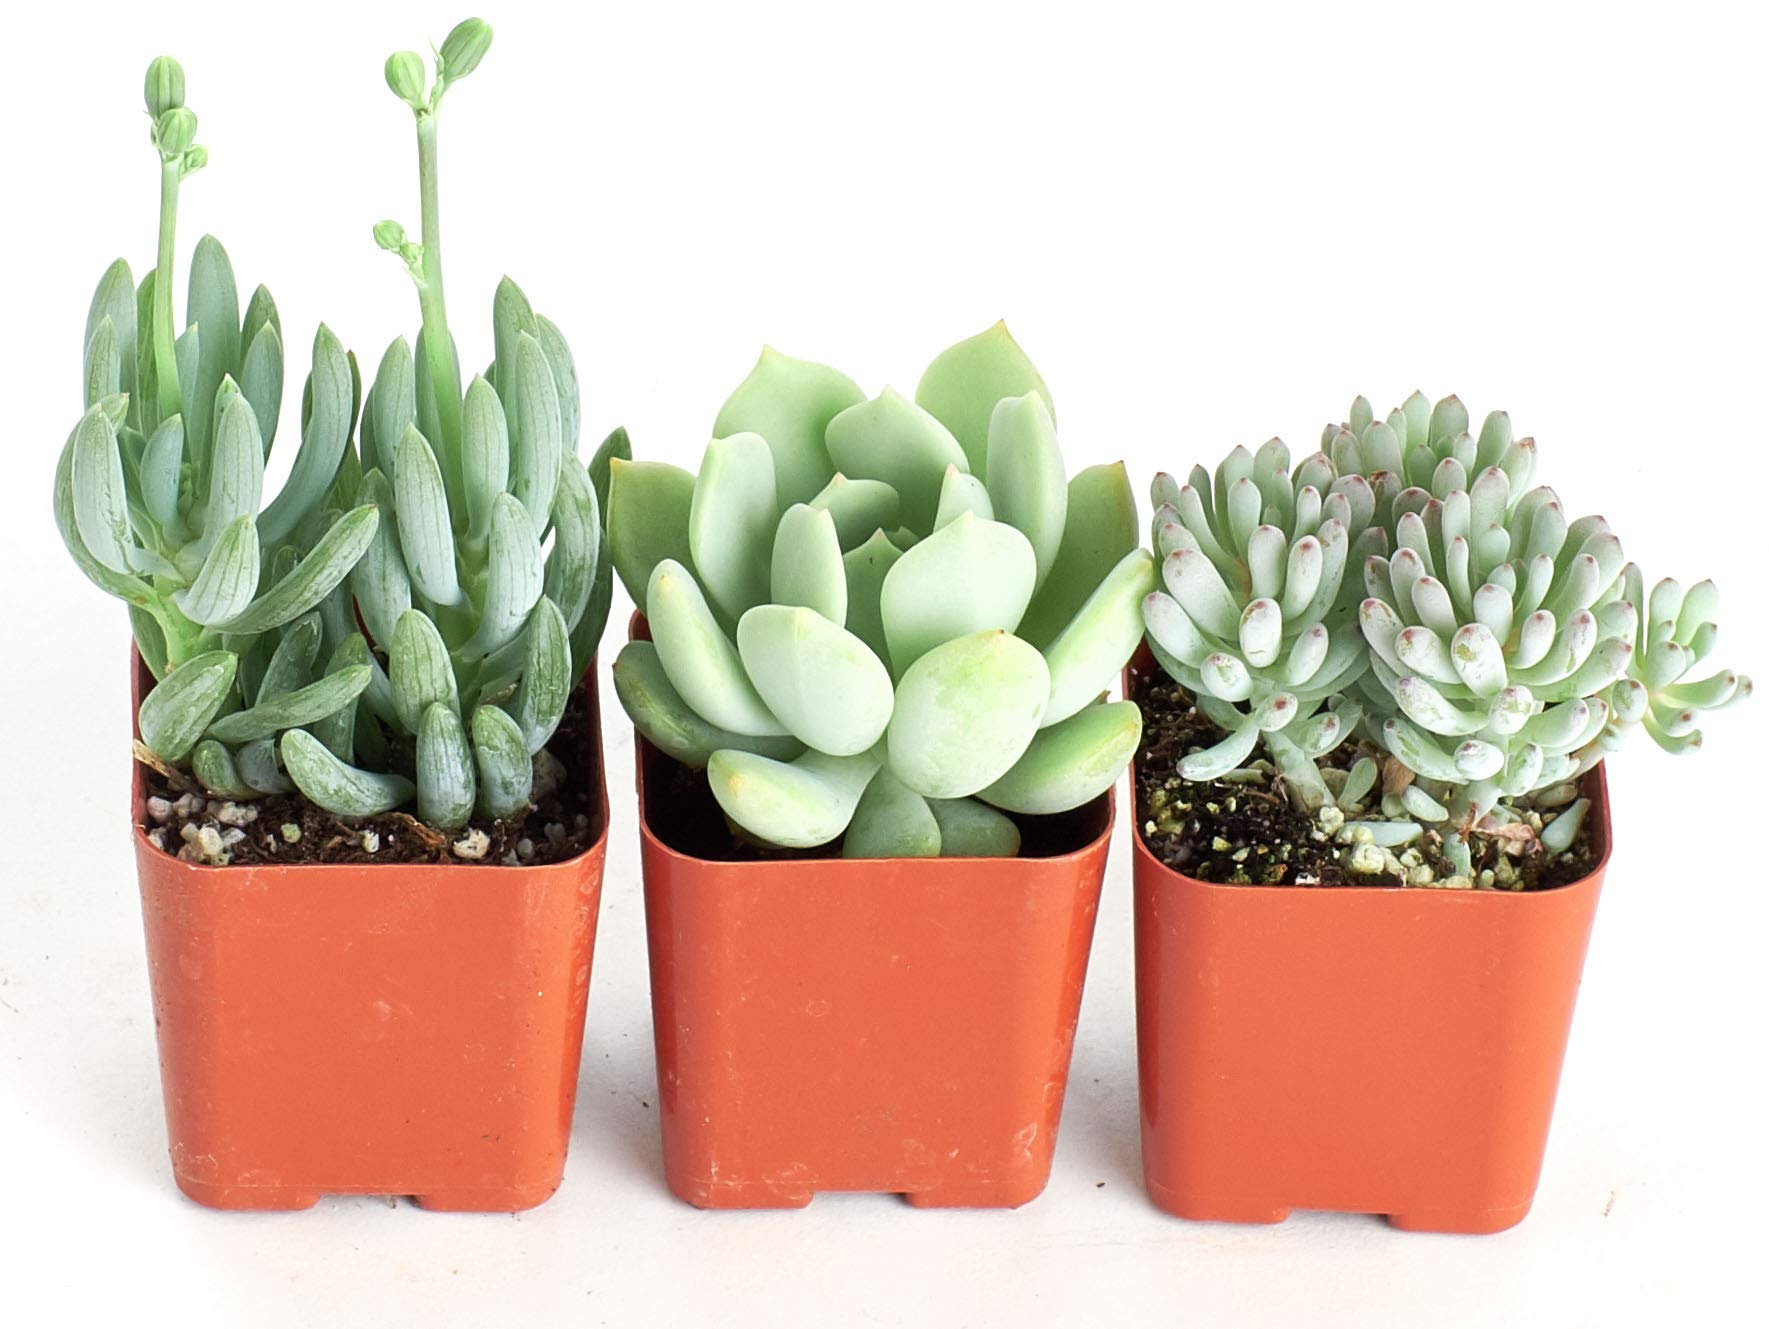 Shop Succulents   It's a Boy Blue Live Plants, Hand Selected Variety Pack of Mini Succulents     Collection of 3 in 2'' pots, 3